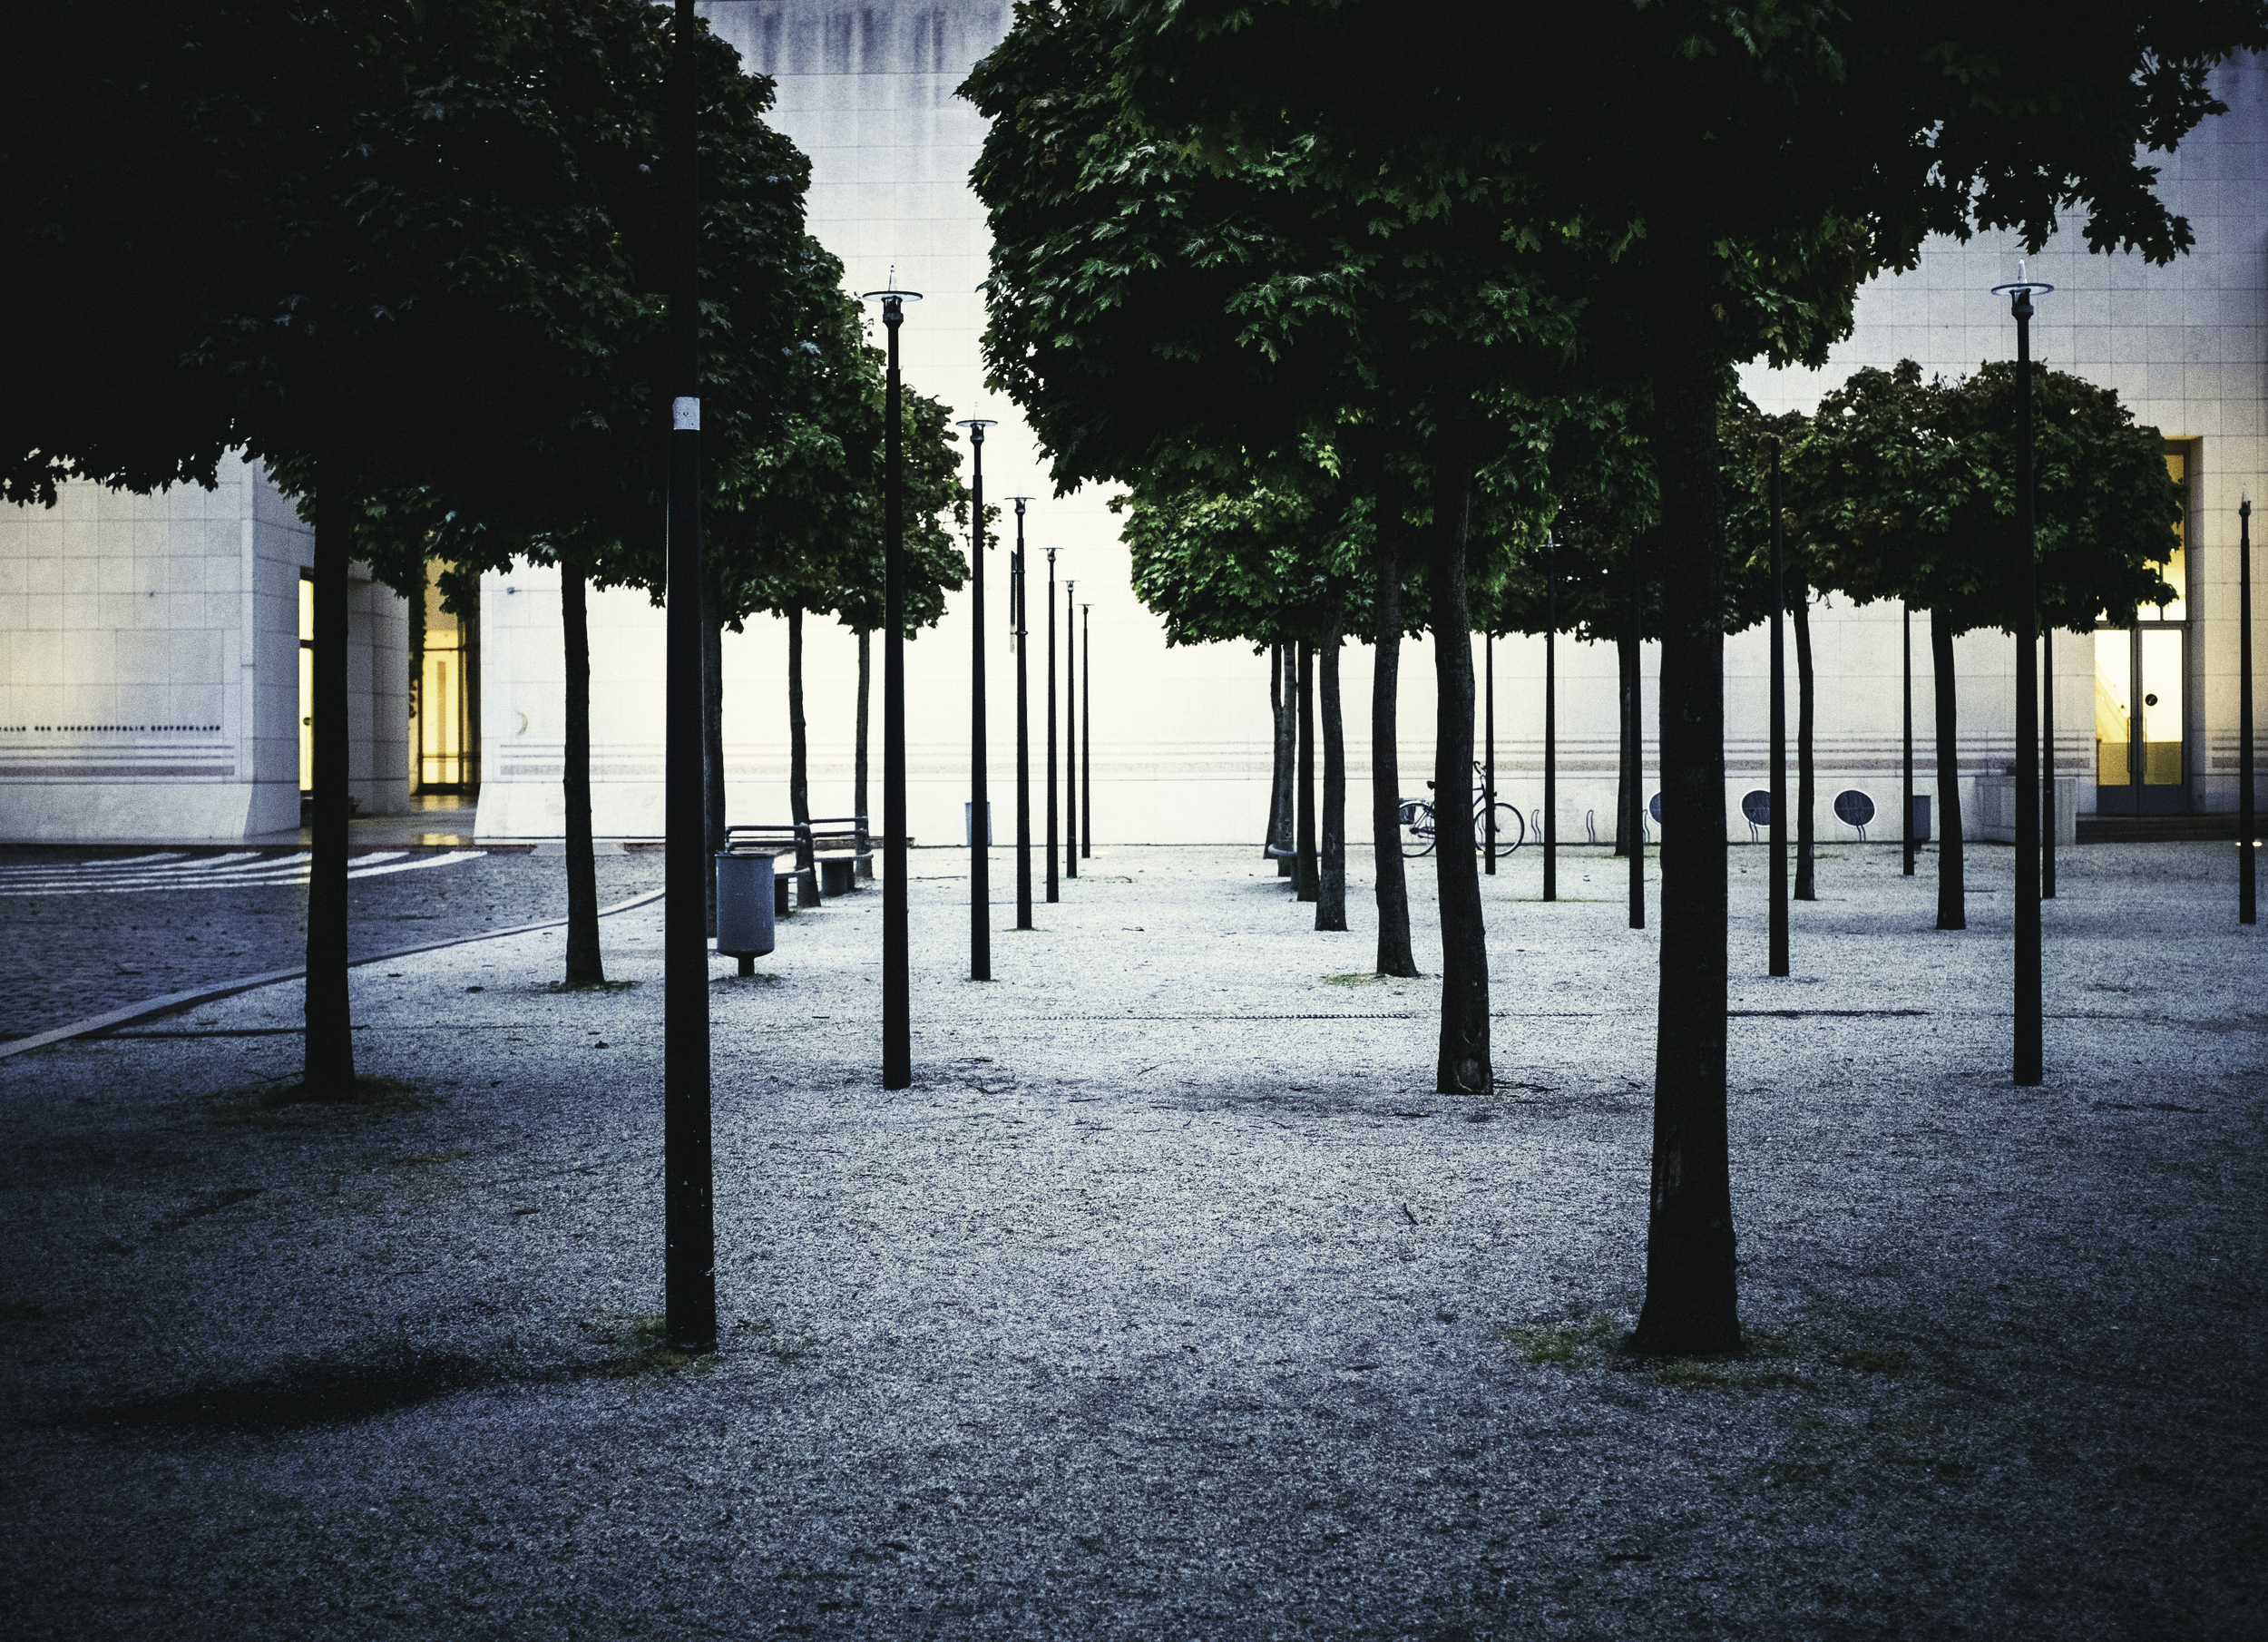 Trees and shadows at the Kunstmuseum in Bonn